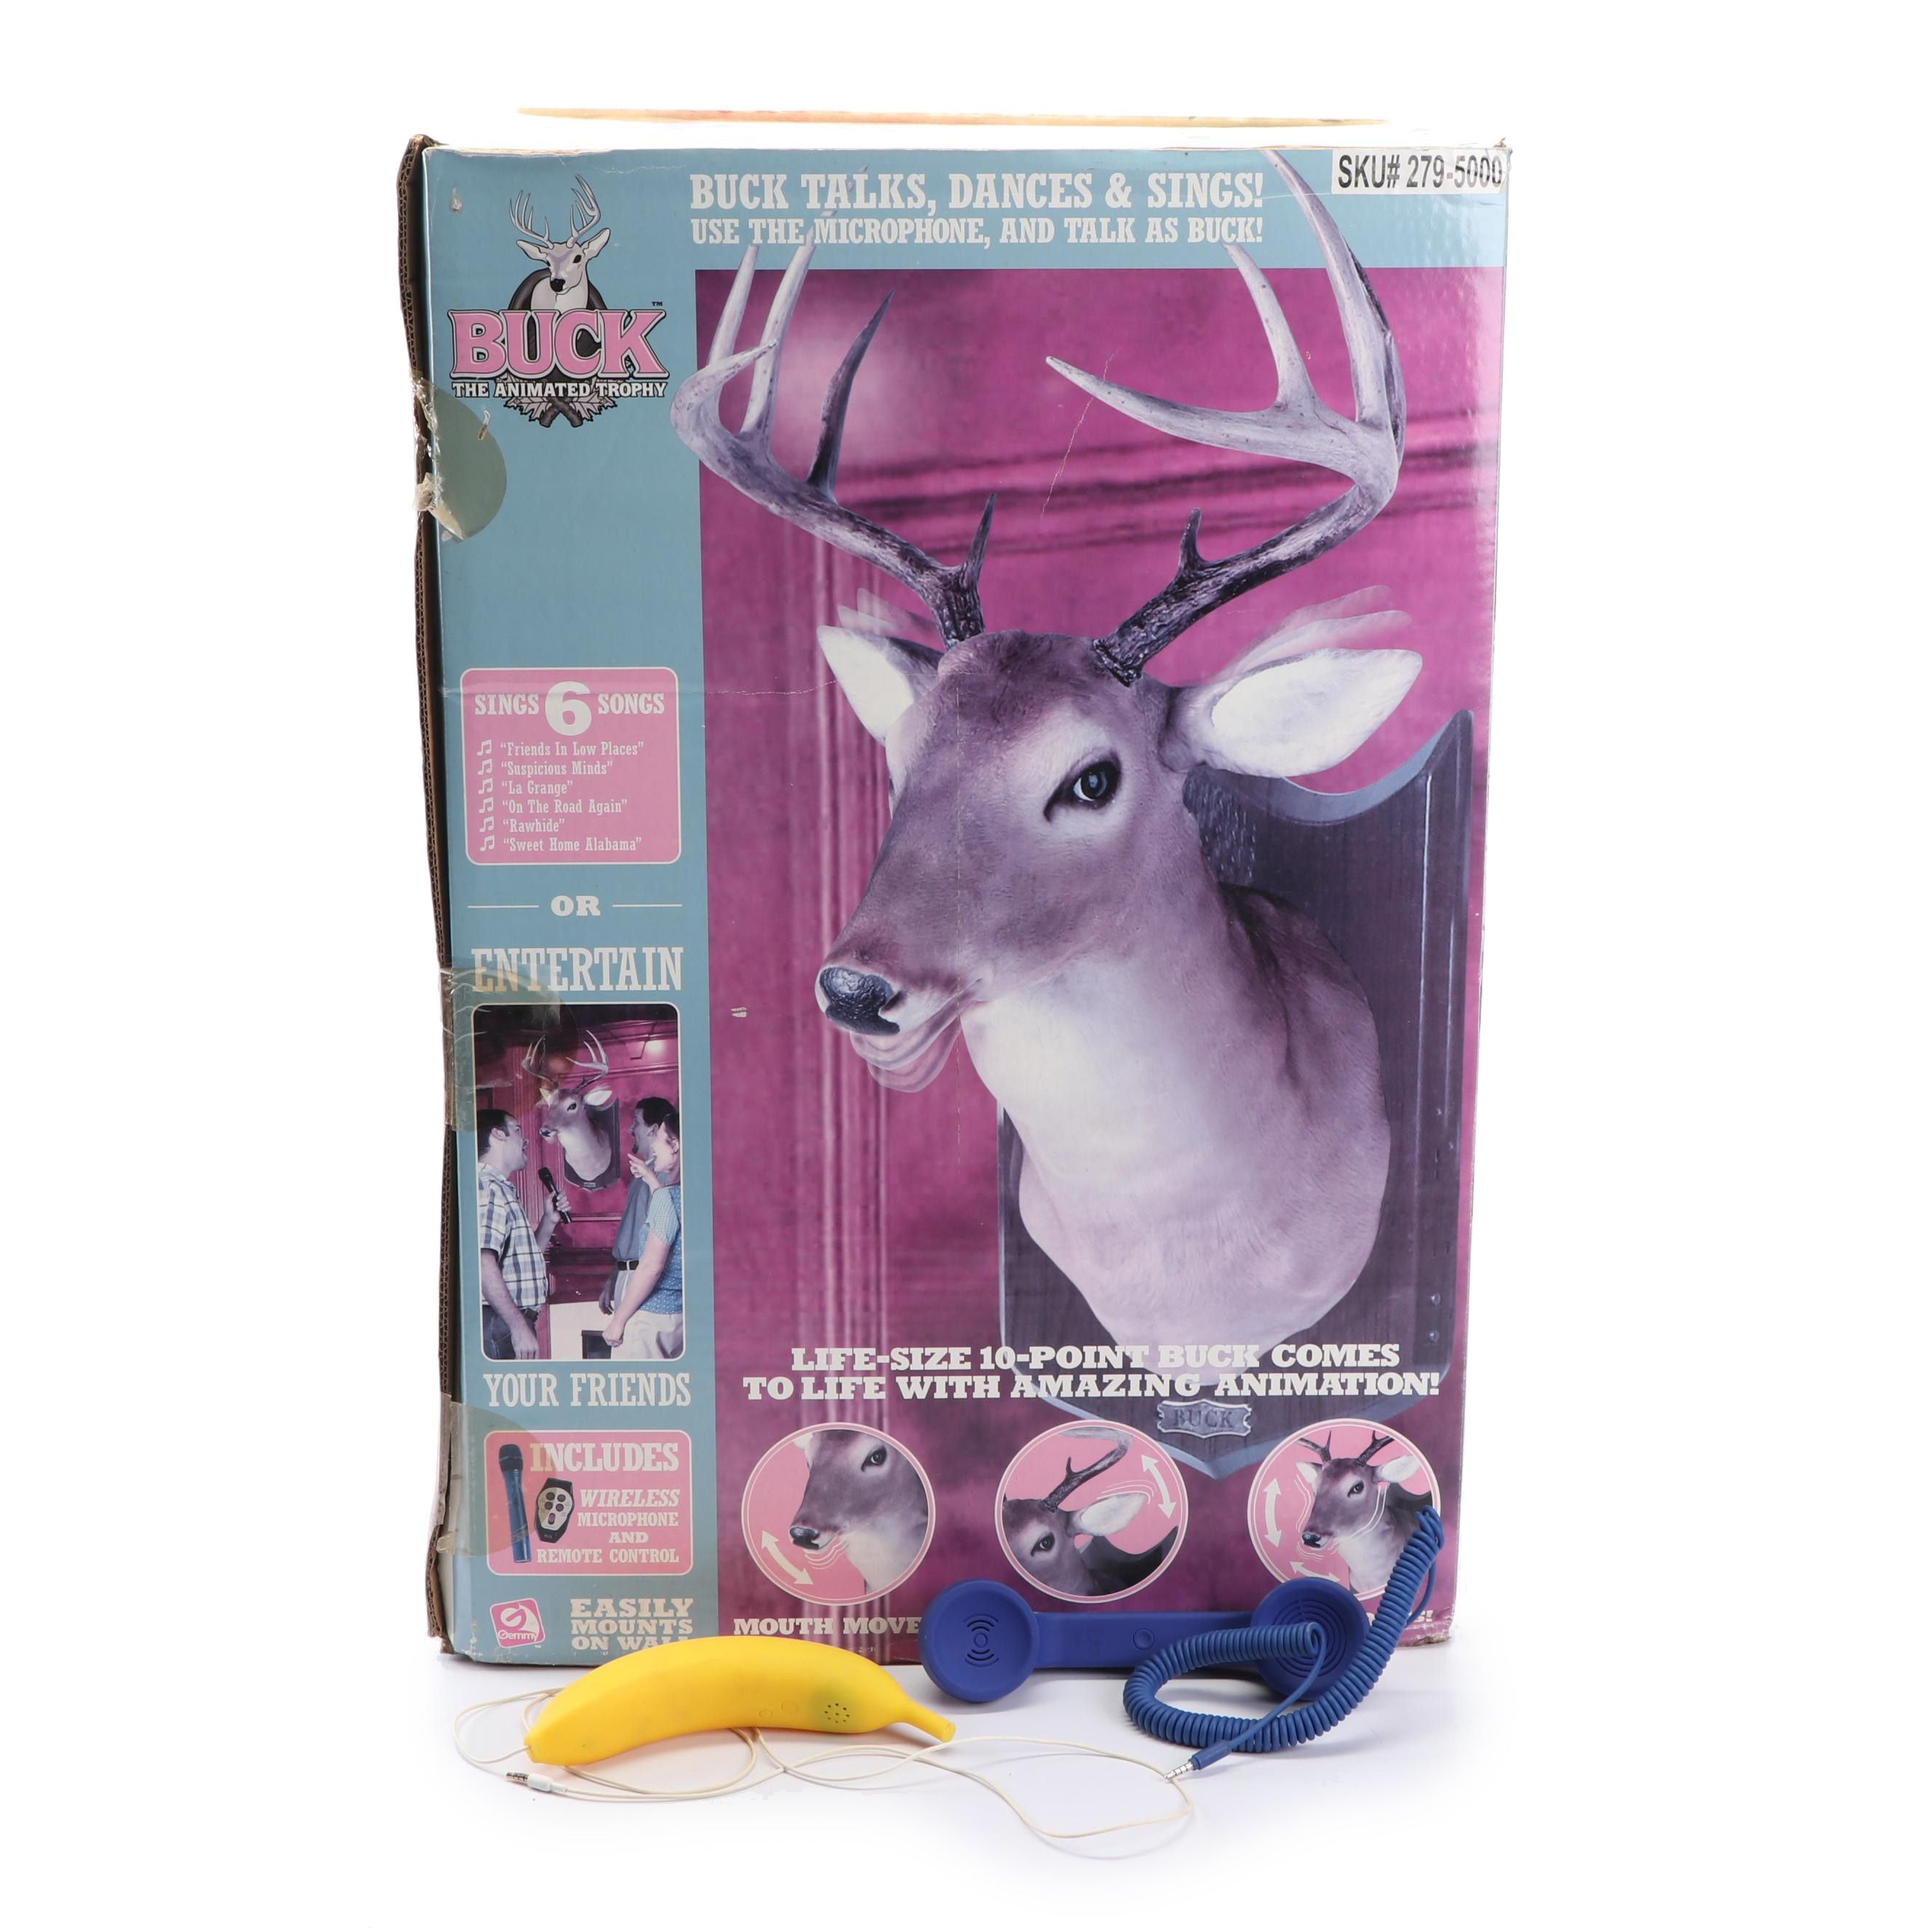 """Buck the Animated Trophy"" Interactive Toy with Phone Receivers"